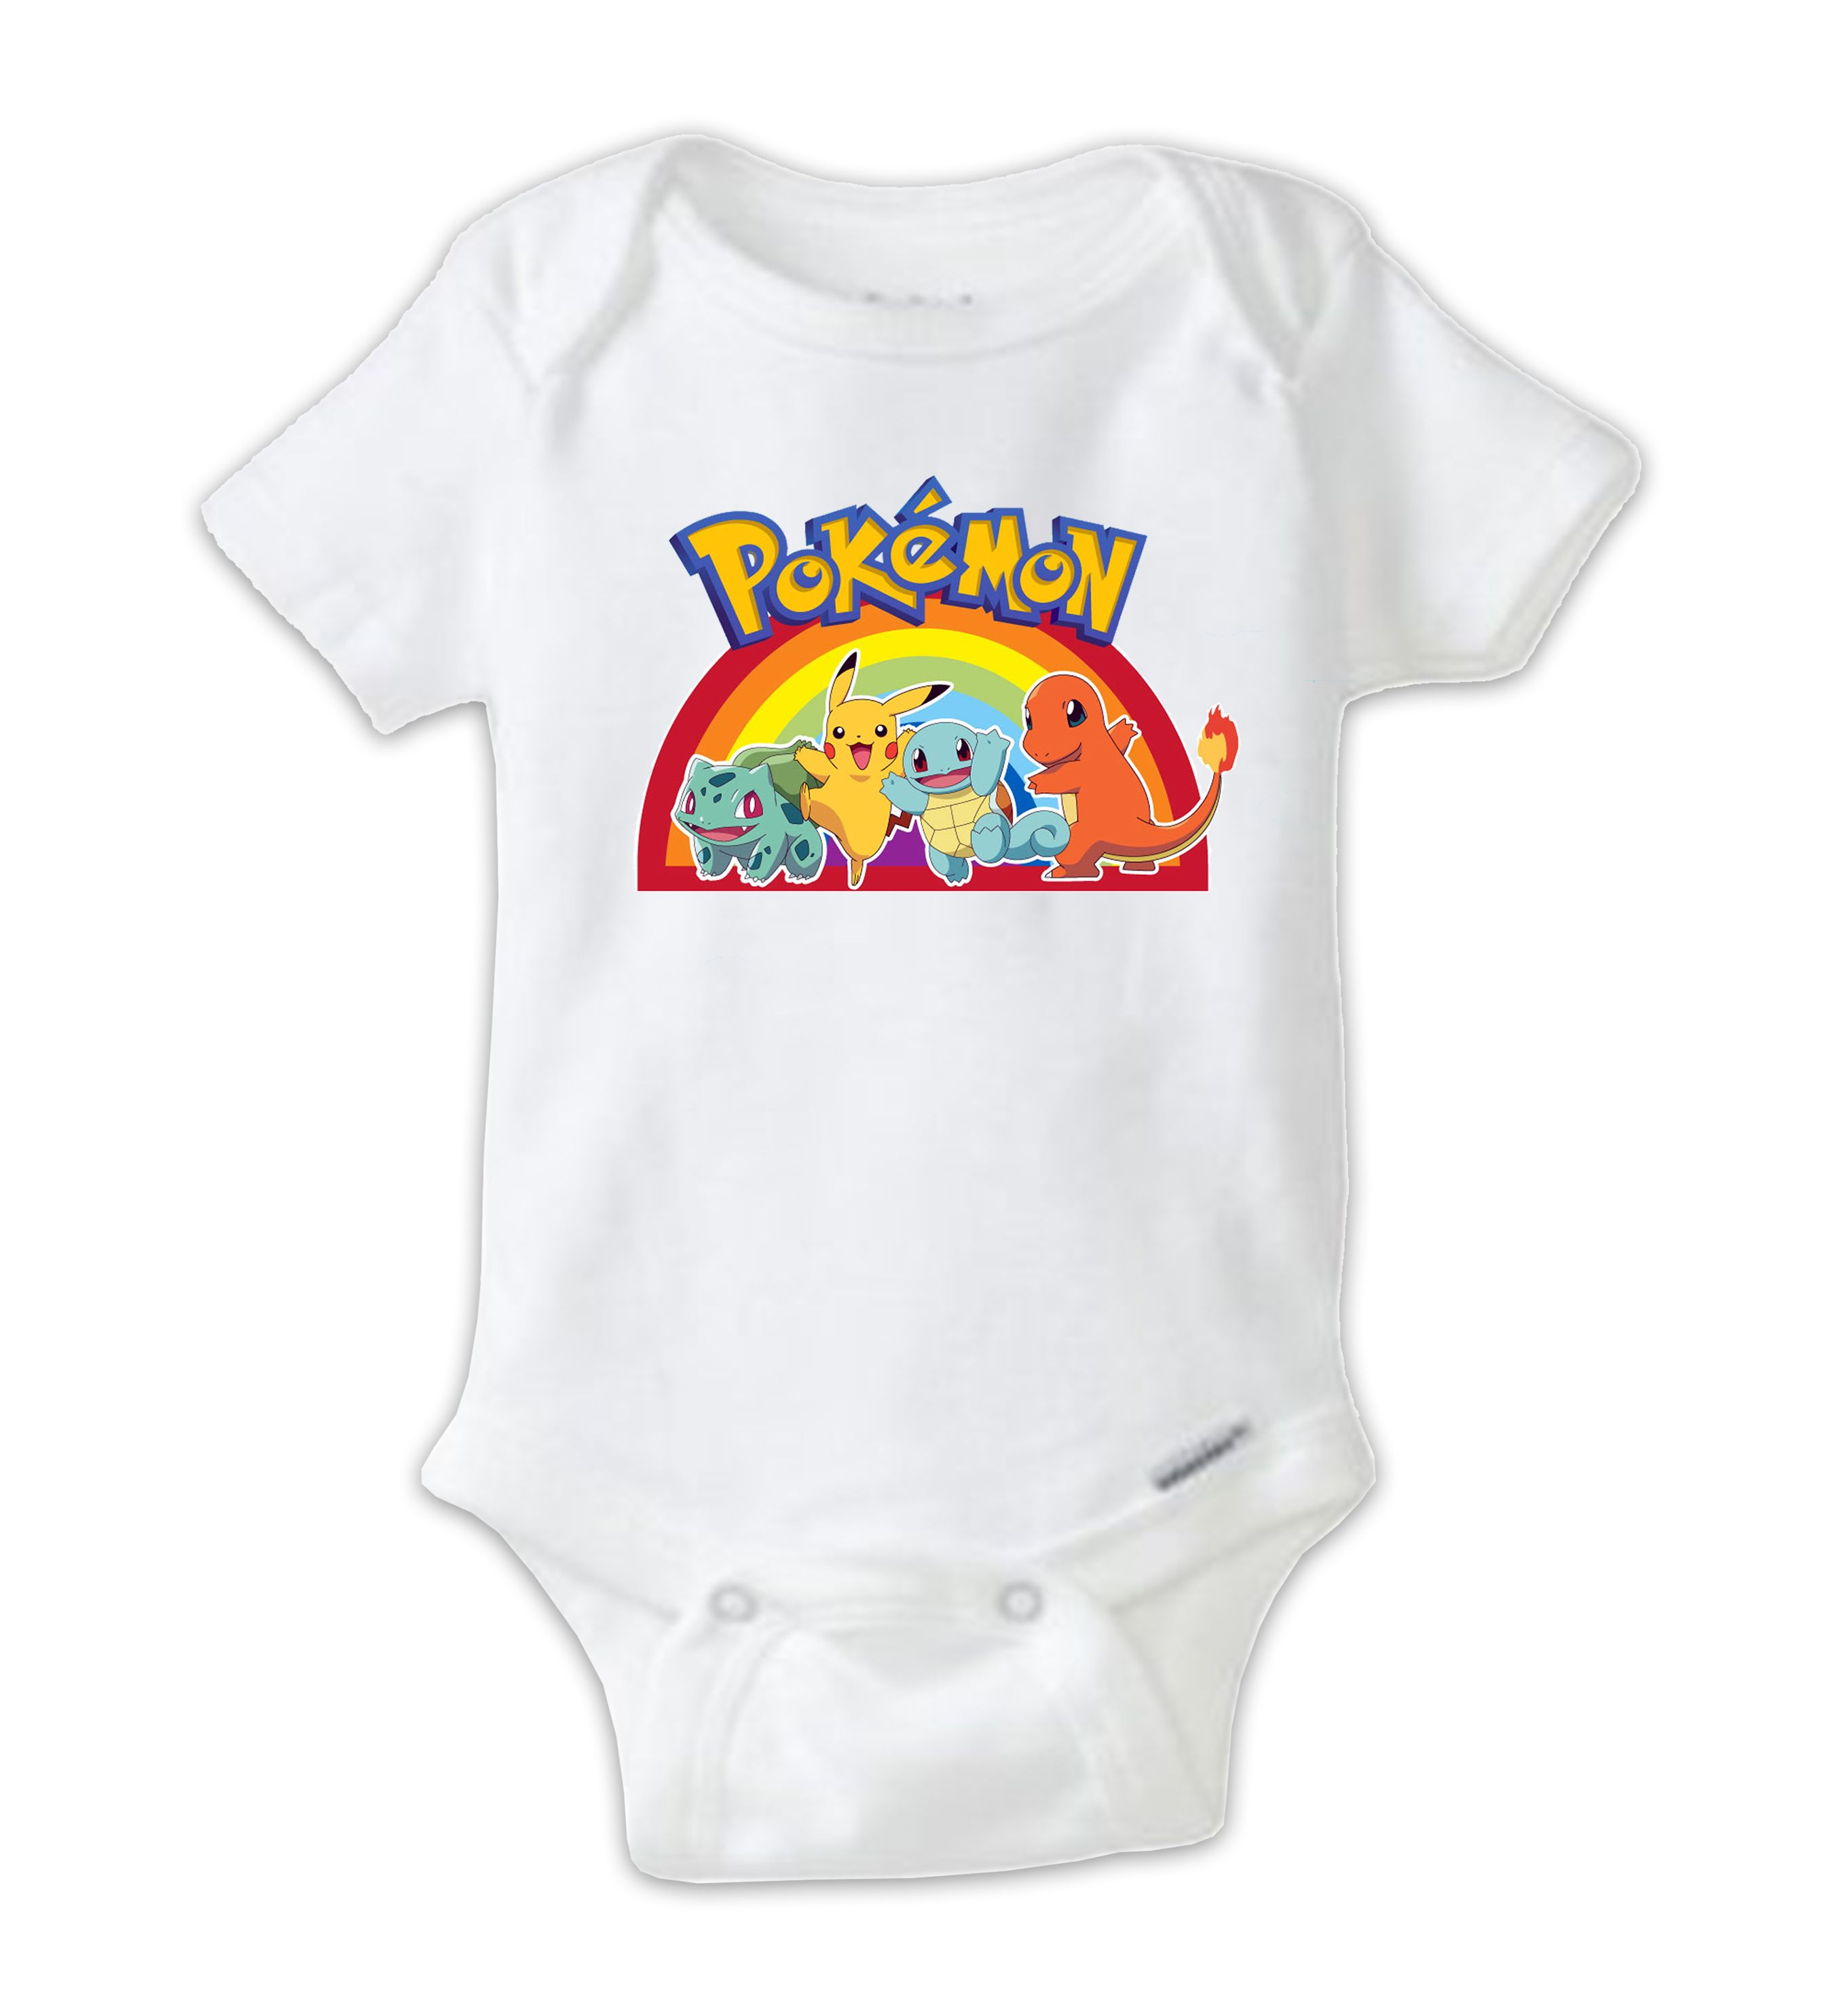 Rainbow pokemon baby onesie pokemon bodysuit pokemon go shirt unique and funny baby onesies for any occasion great baby shower gifts and christmas gifts personalized baby bodysuits also available negle Choice Image